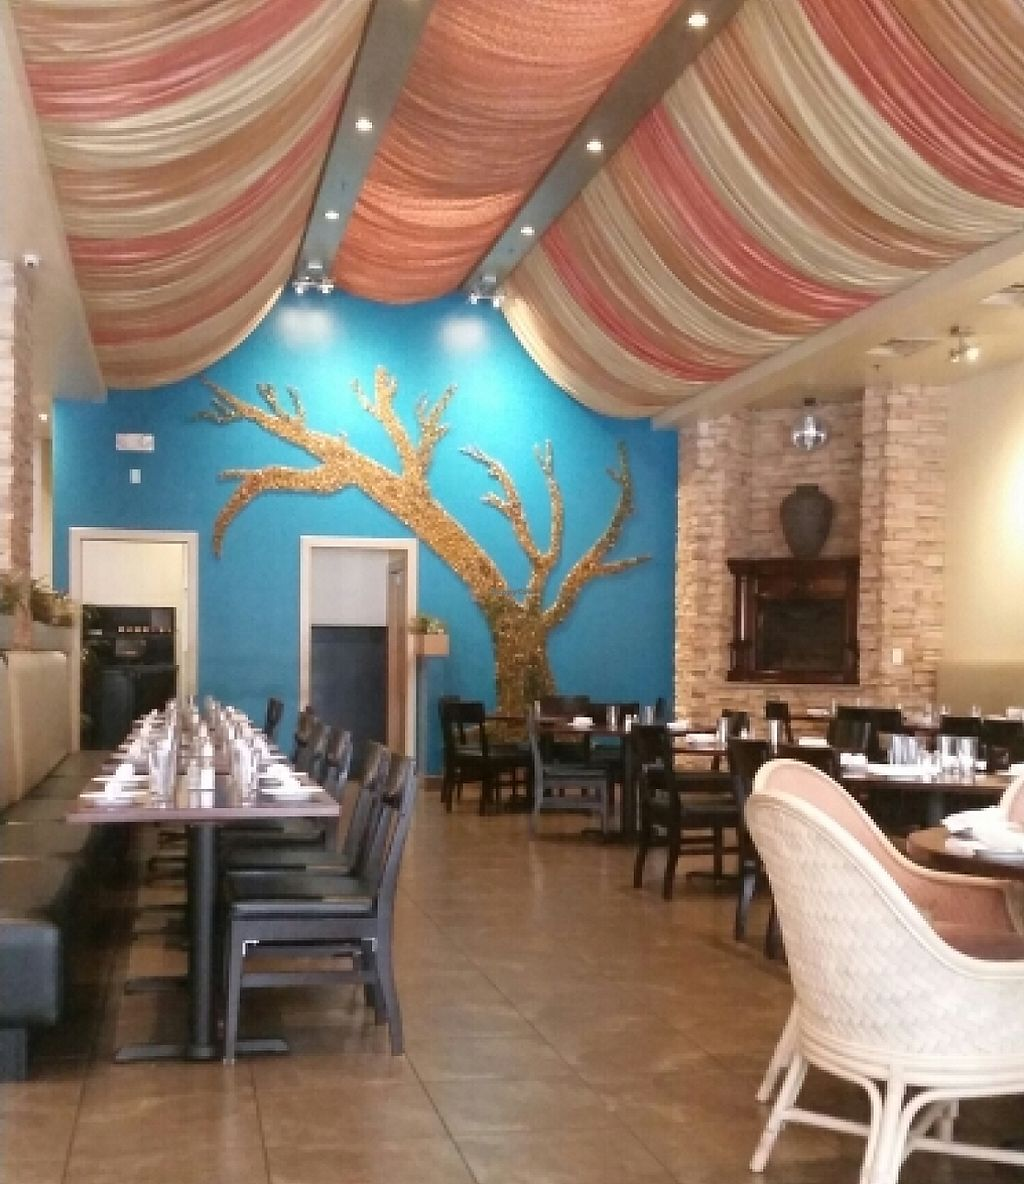 """Photo of Spice Xing  by <a href=""""/members/profile/lazylimabean"""">lazylimabean</a> <br/>Dining area <br/> April 9, 2016  - <a href='/contact/abuse/image/71636/202059'>Report</a>"""